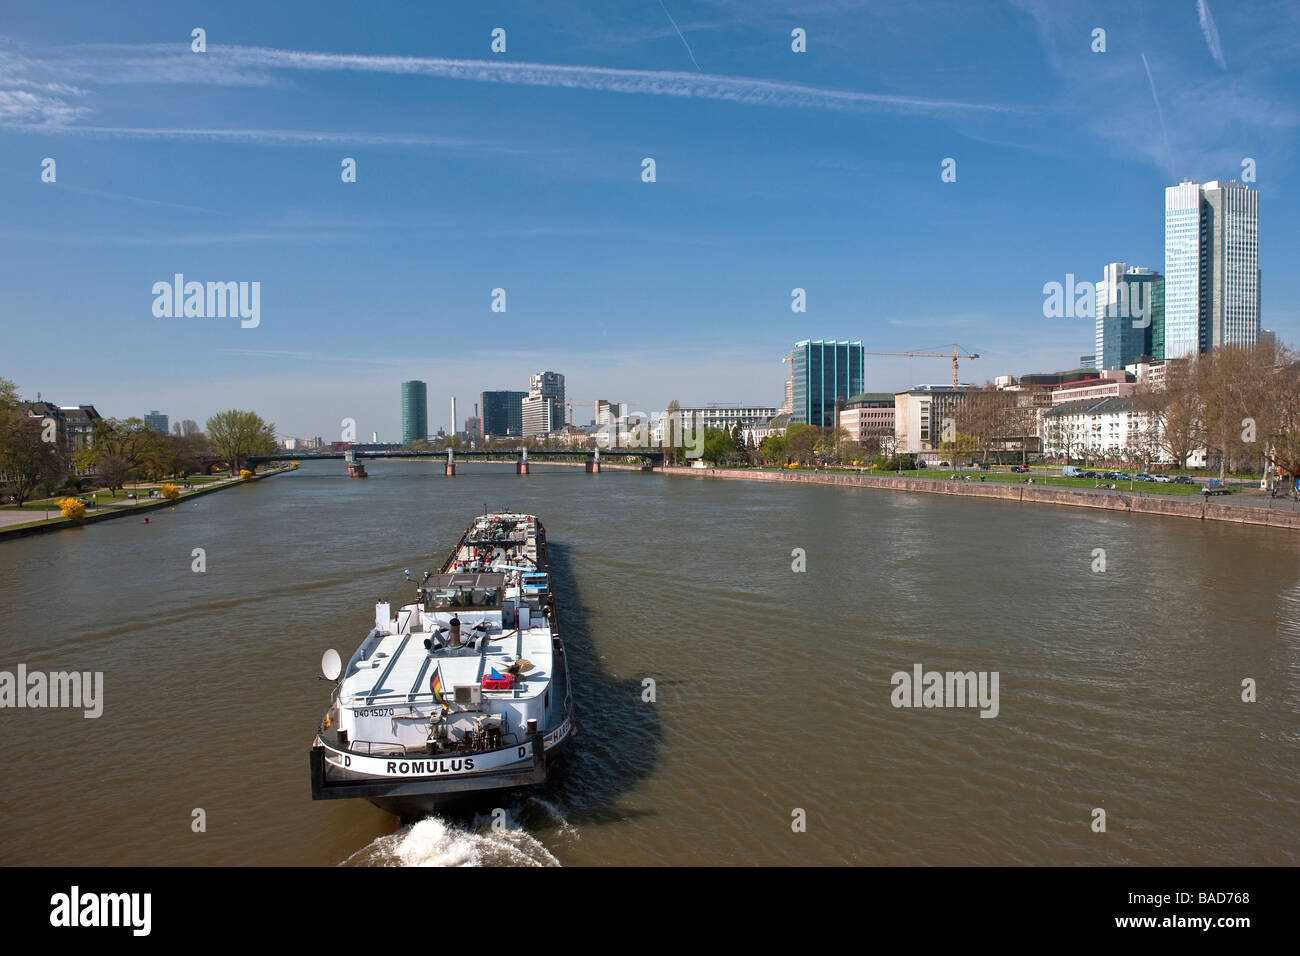 A boat plies the Main River passing through Frankfurt, Germany - Stock Image